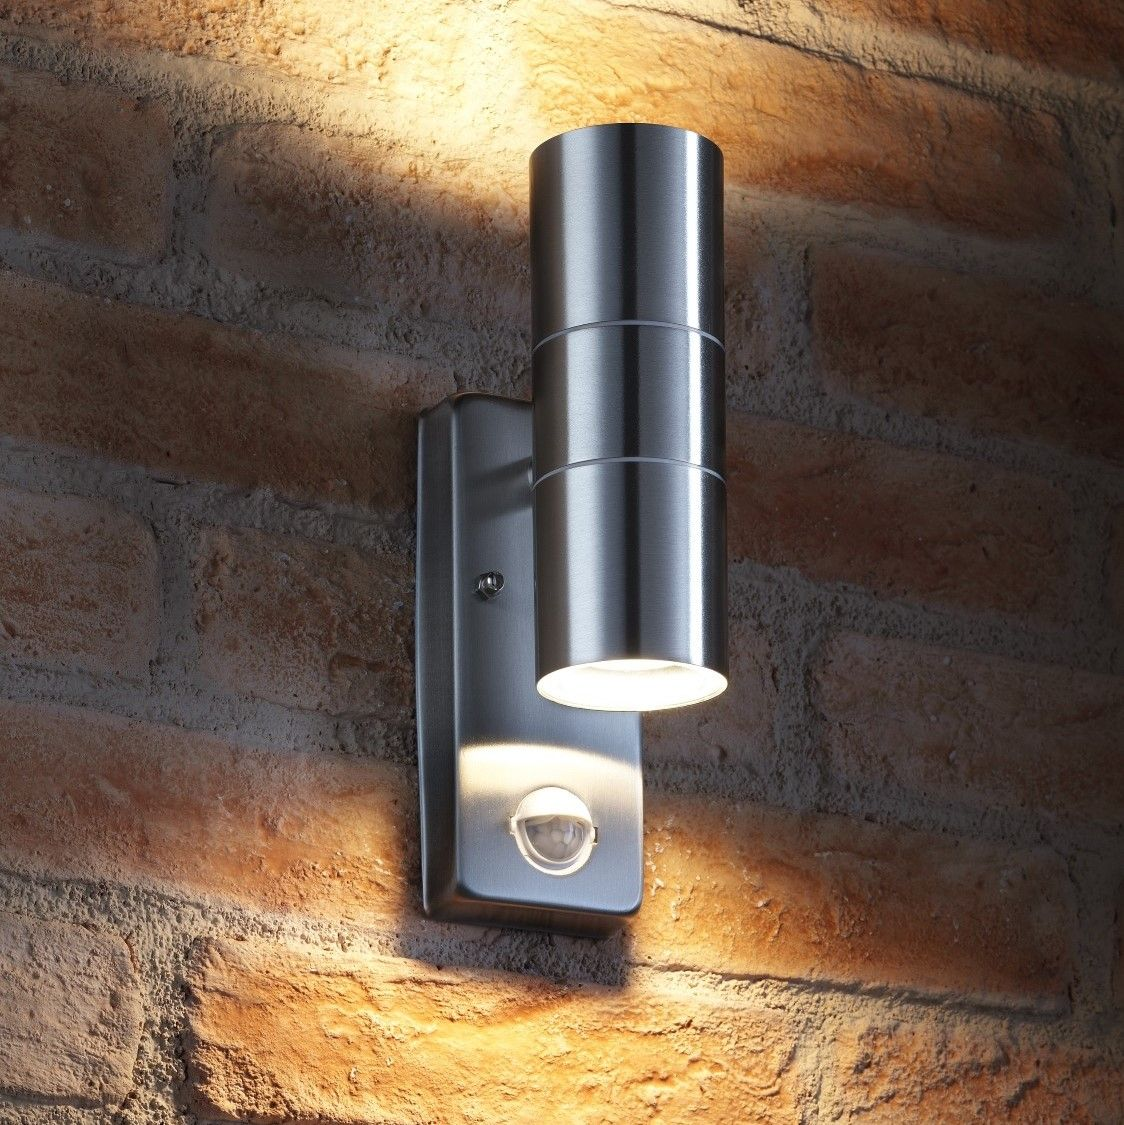 Brushed Stainless Steel Outside External Wall Light With Movement Motion Sensor